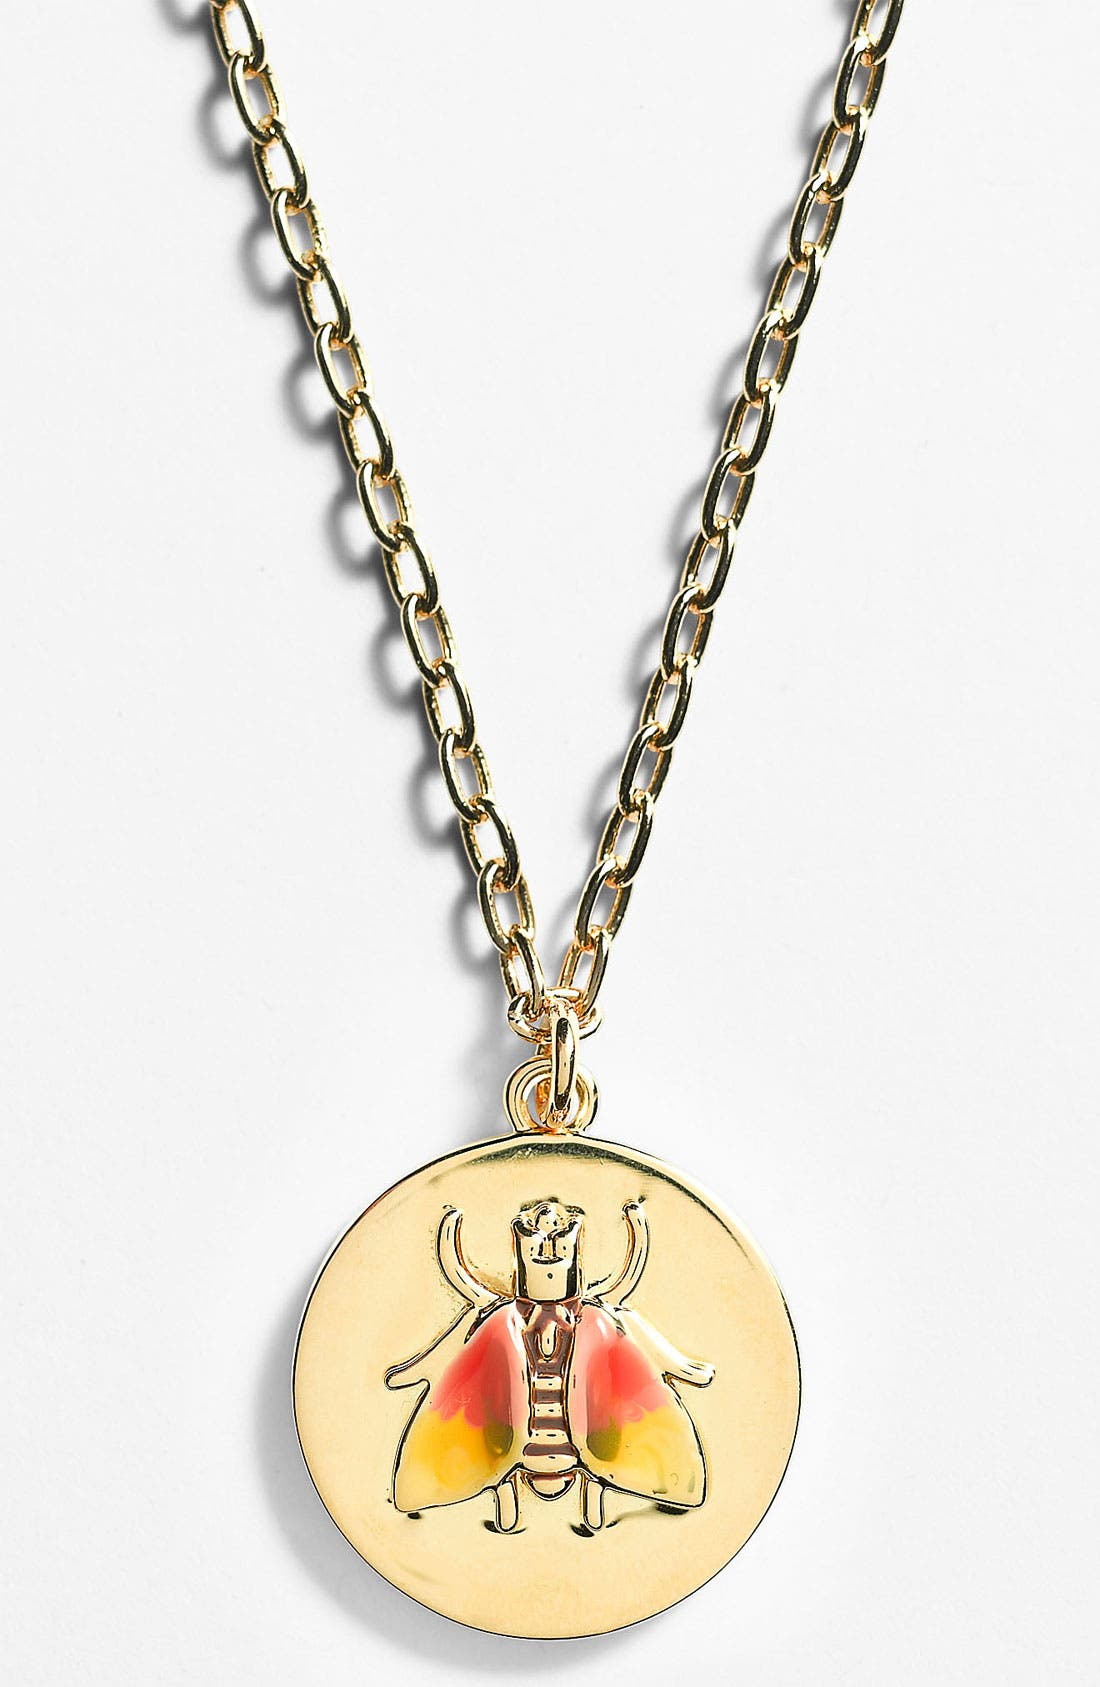 Alternate Image 1 Selected - Tory Burch 'Buddy' Pendant Necklace